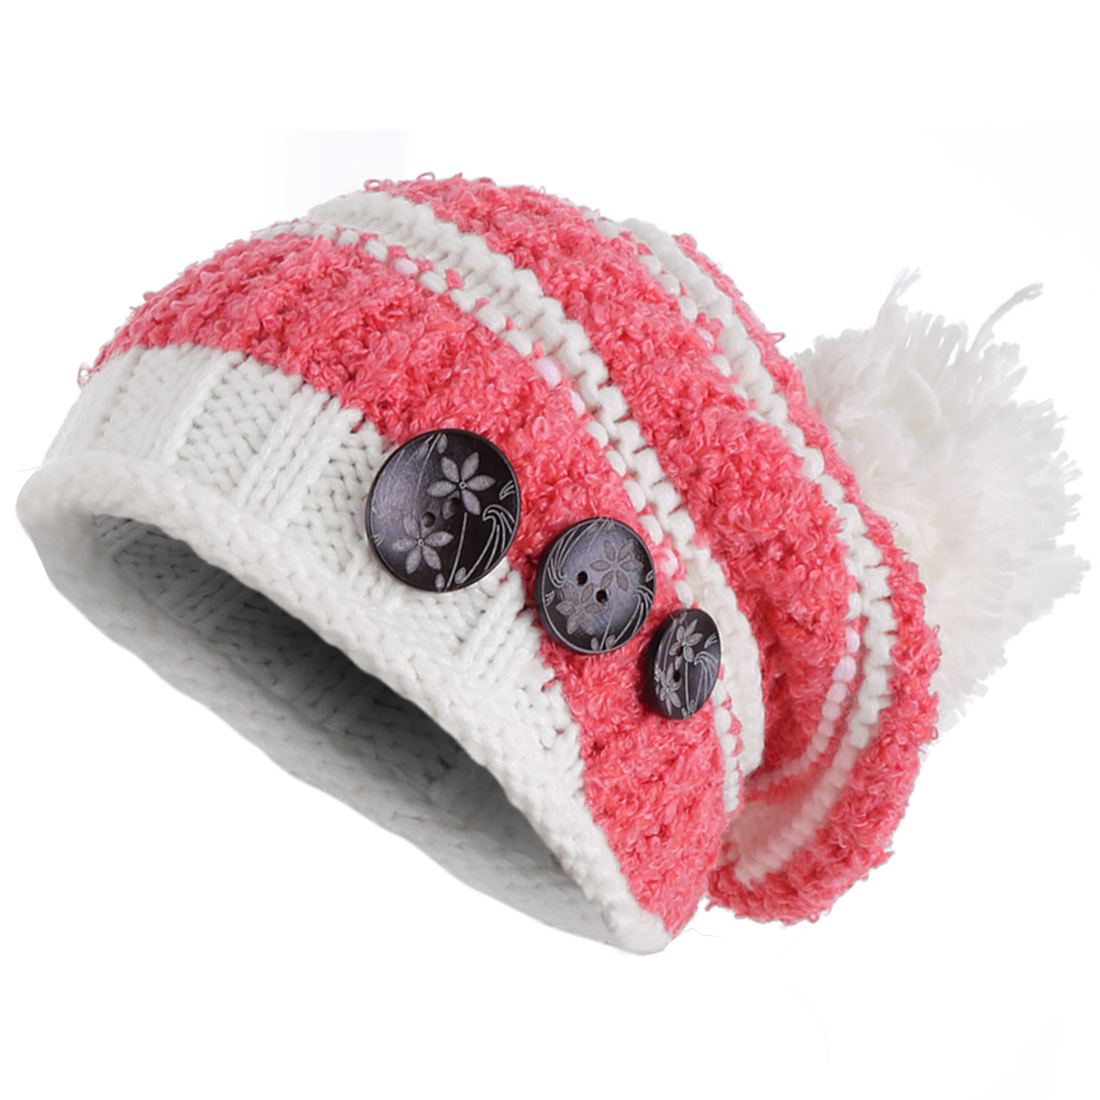 Women's Fashion Pom Pom Button Decor Stripes Fuchsia Beanie Hat